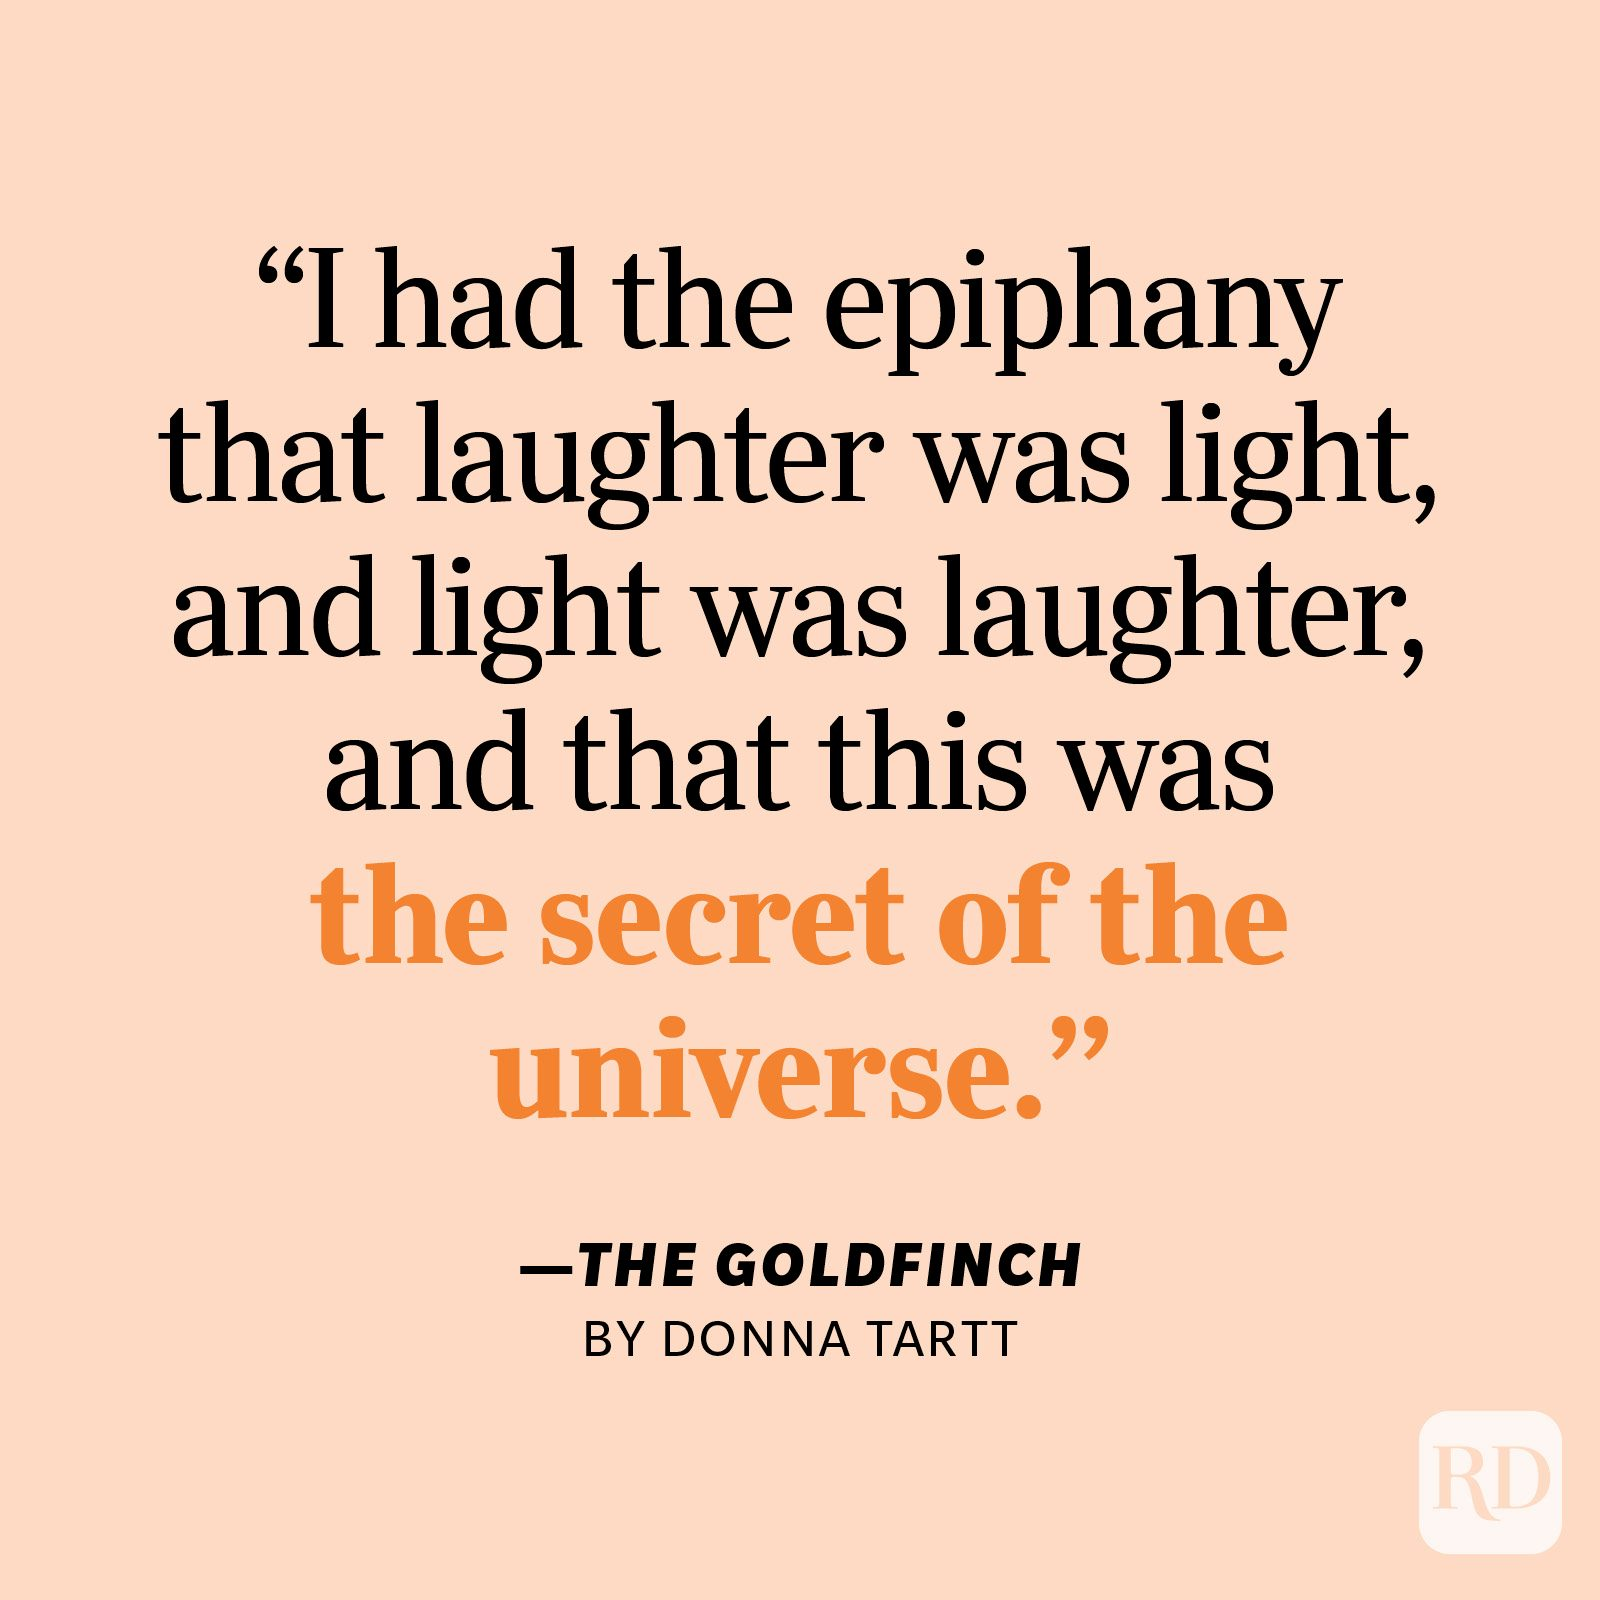 """The Goldfinch by Donna Tartt """"I had the epiphany that laughter was light, and light was laughter, and that this was the secret of the universe."""""""